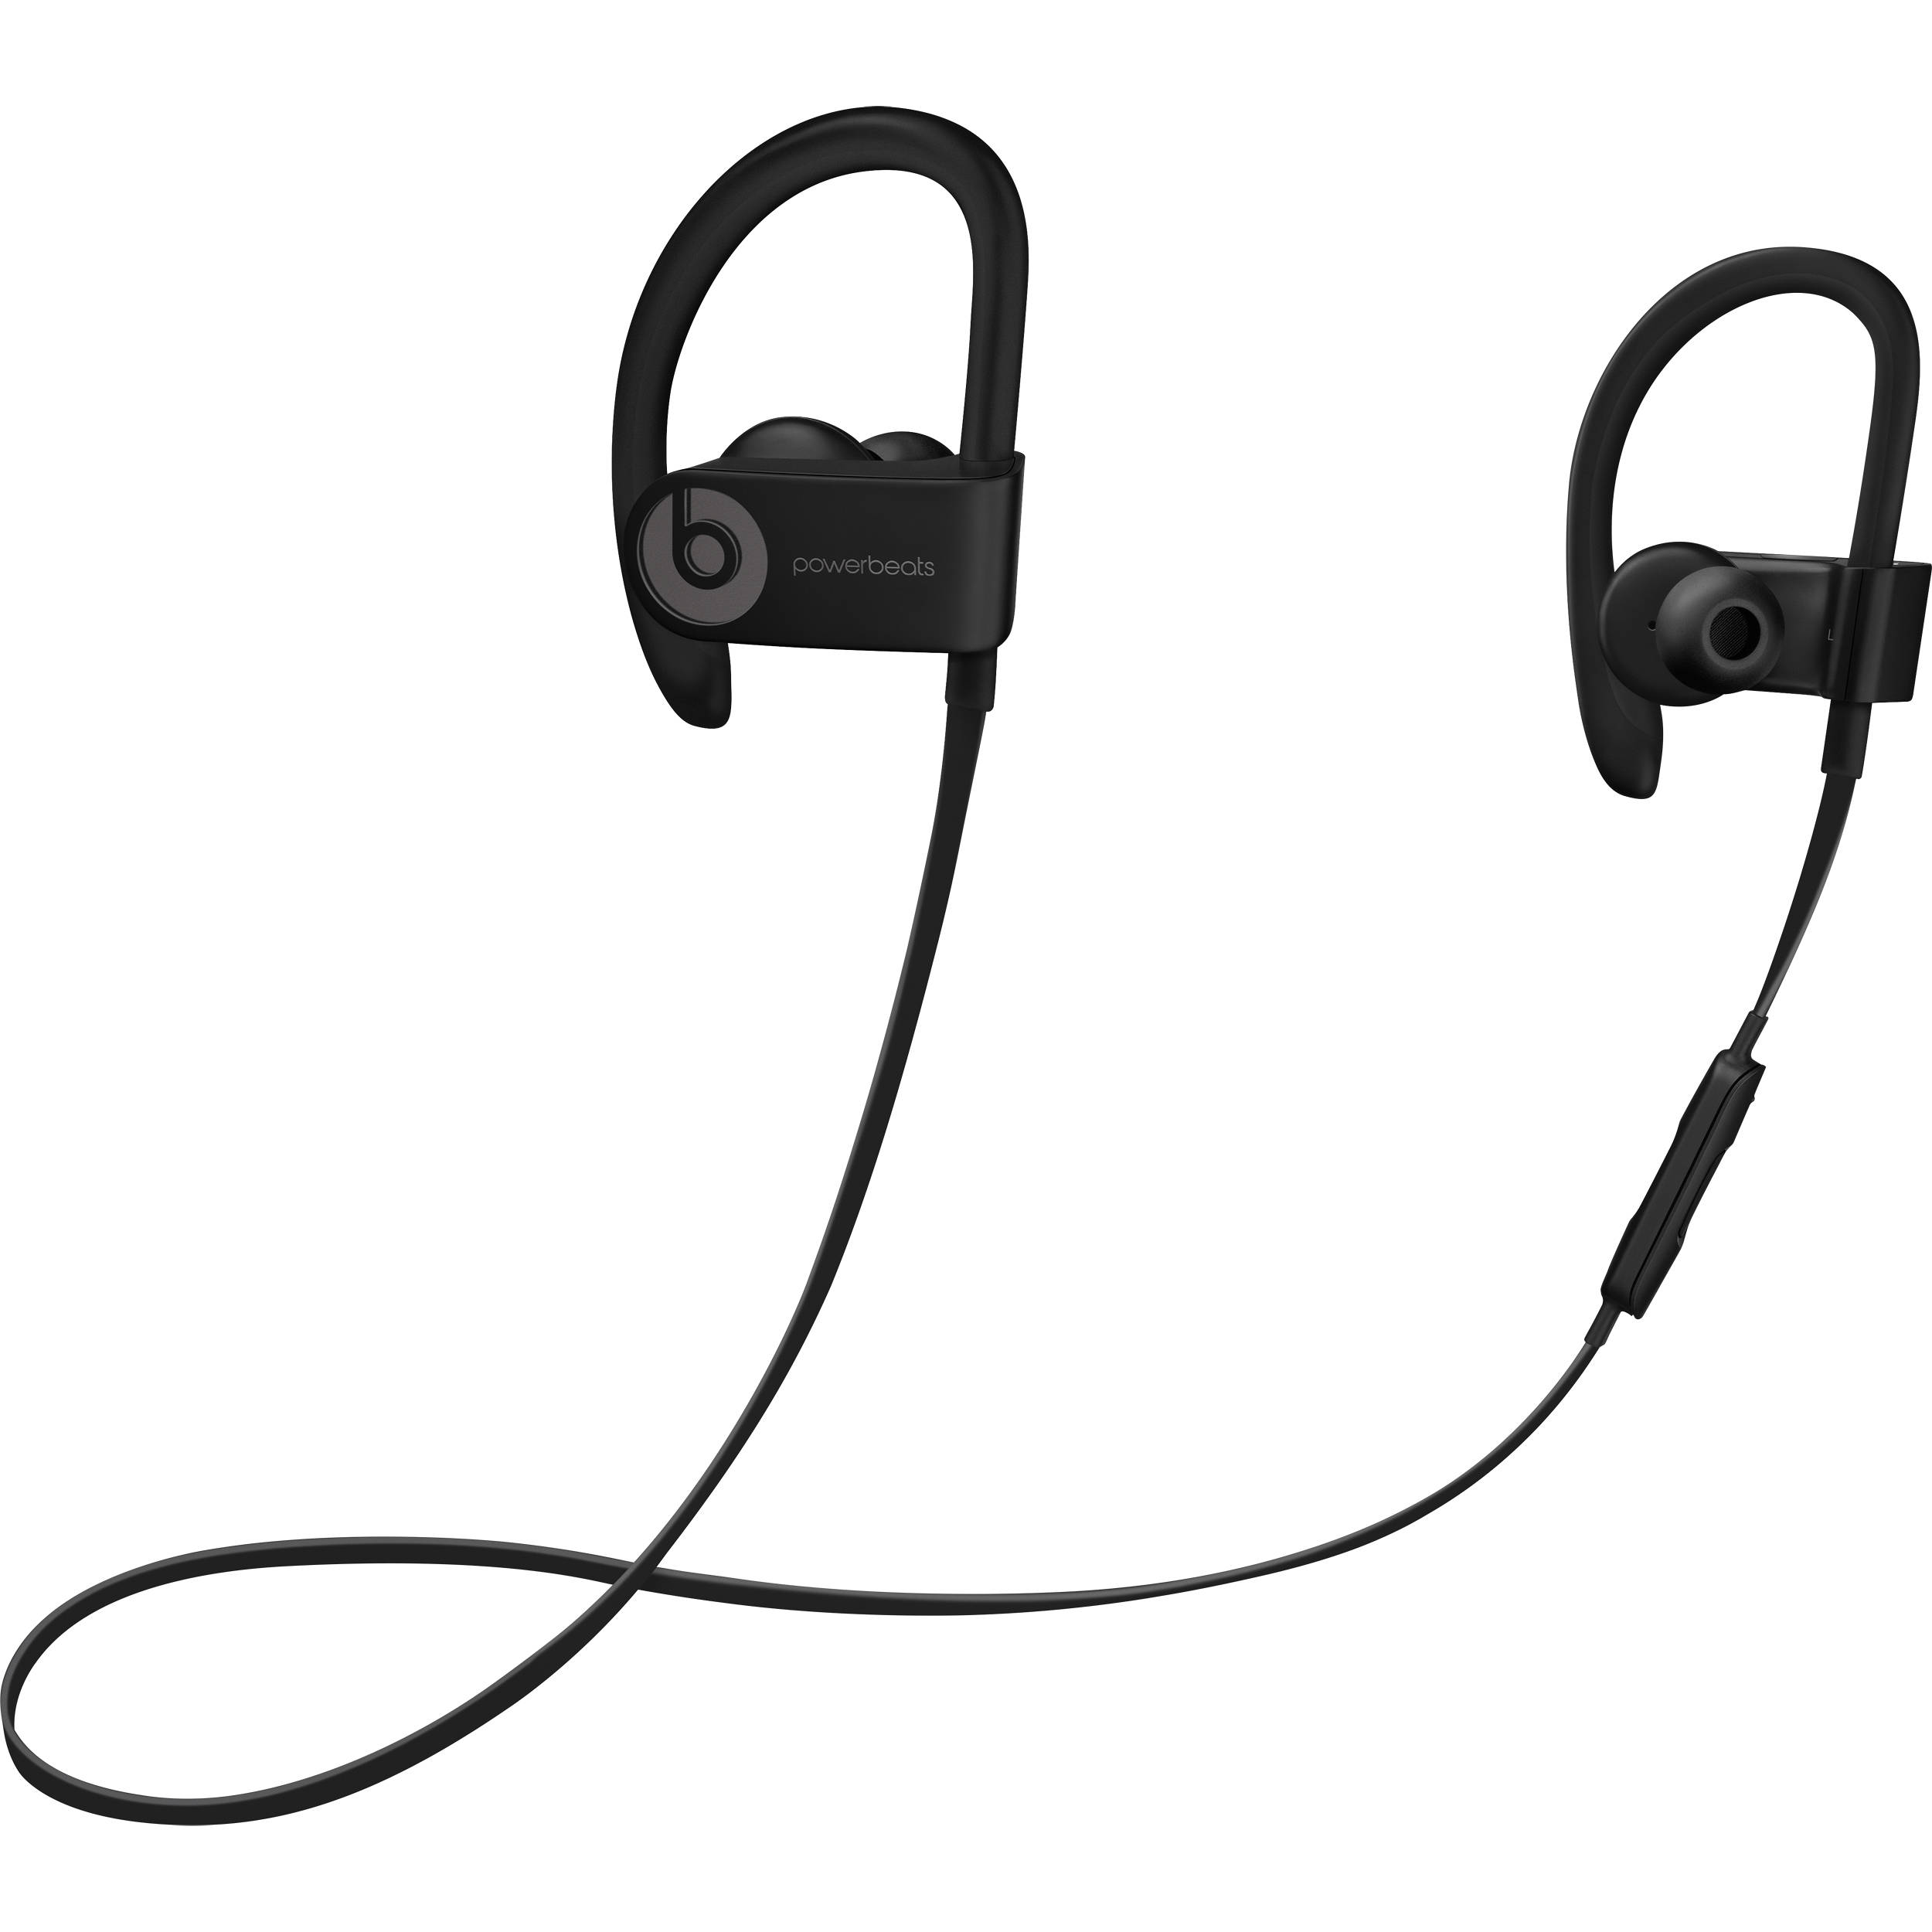 1232cfaab7c beats_by_dr_dre_ml8v2ll_a_powerbeats3_in_ear_headphones_black_1280790.jpg